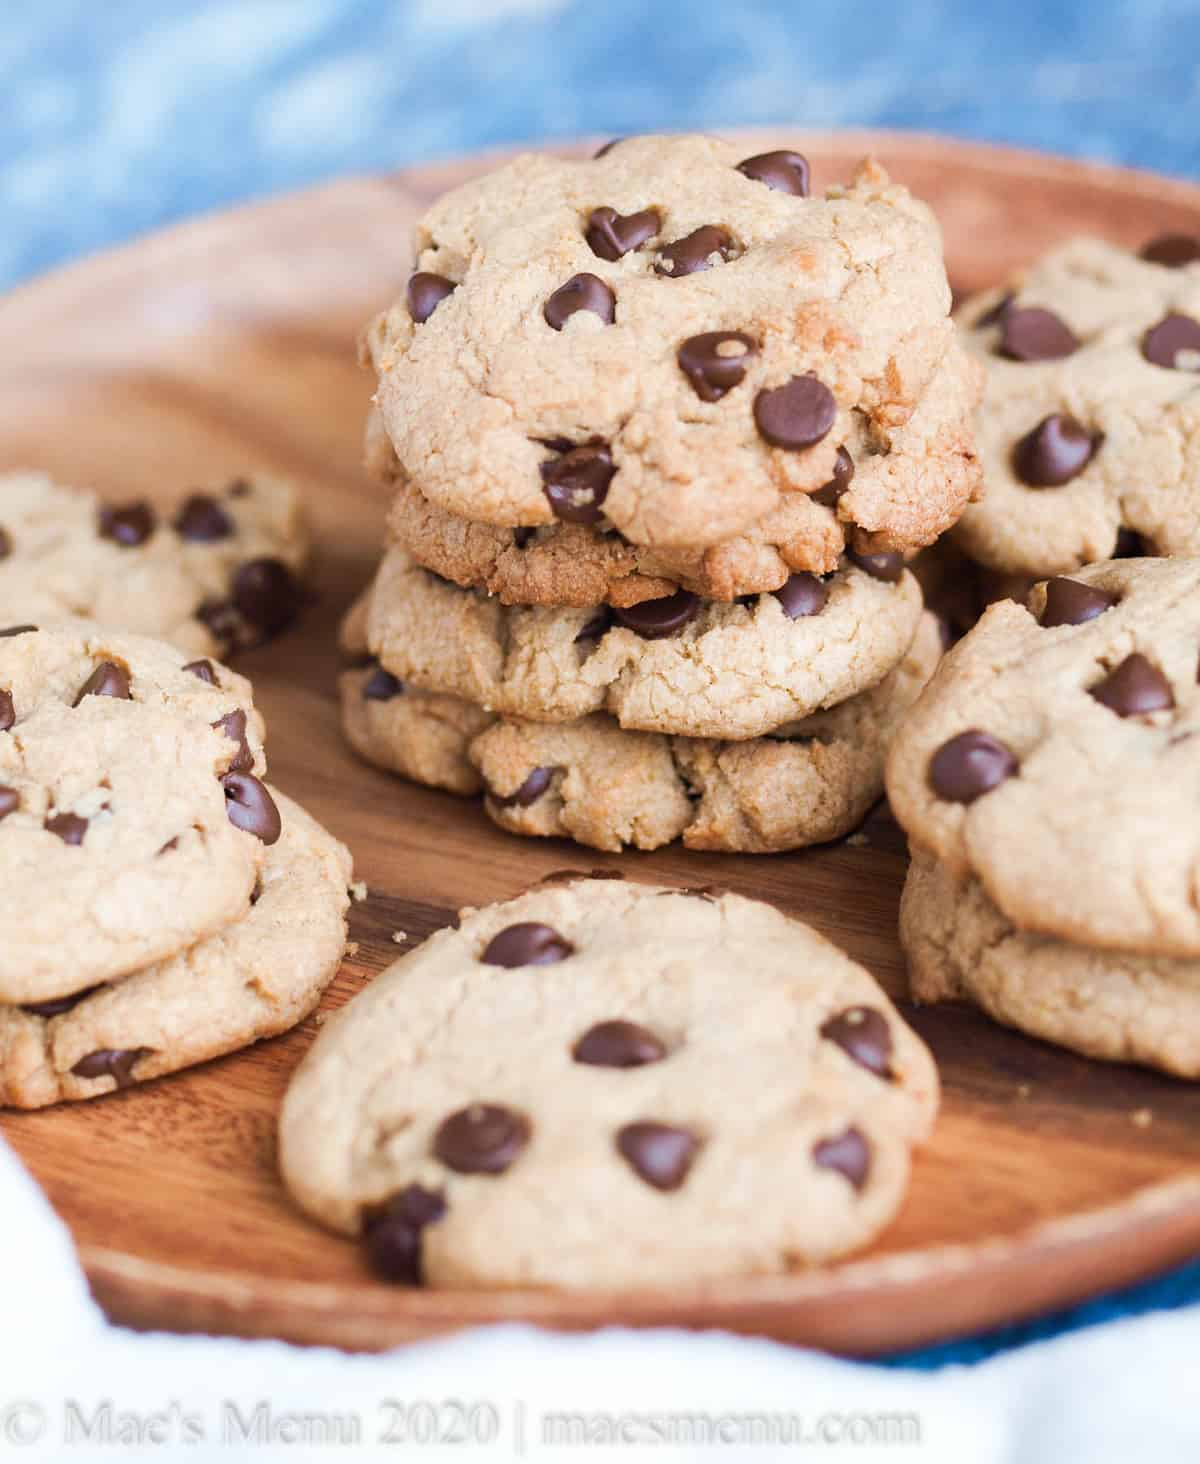 A tray of high altitude chocolate chip cookies